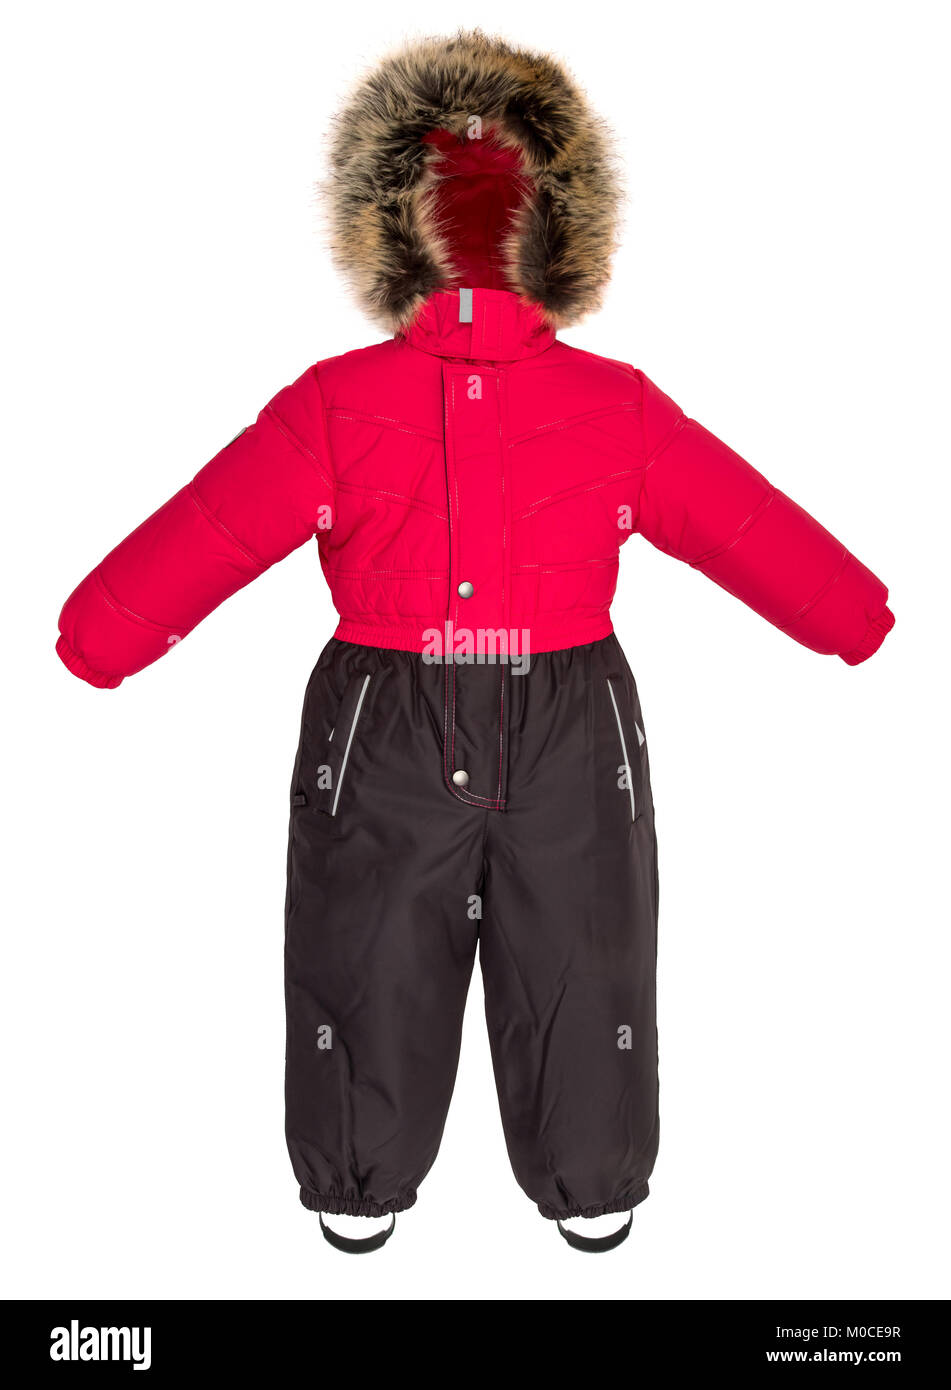 Childrens snowsuit fall on a white background - Stock Image